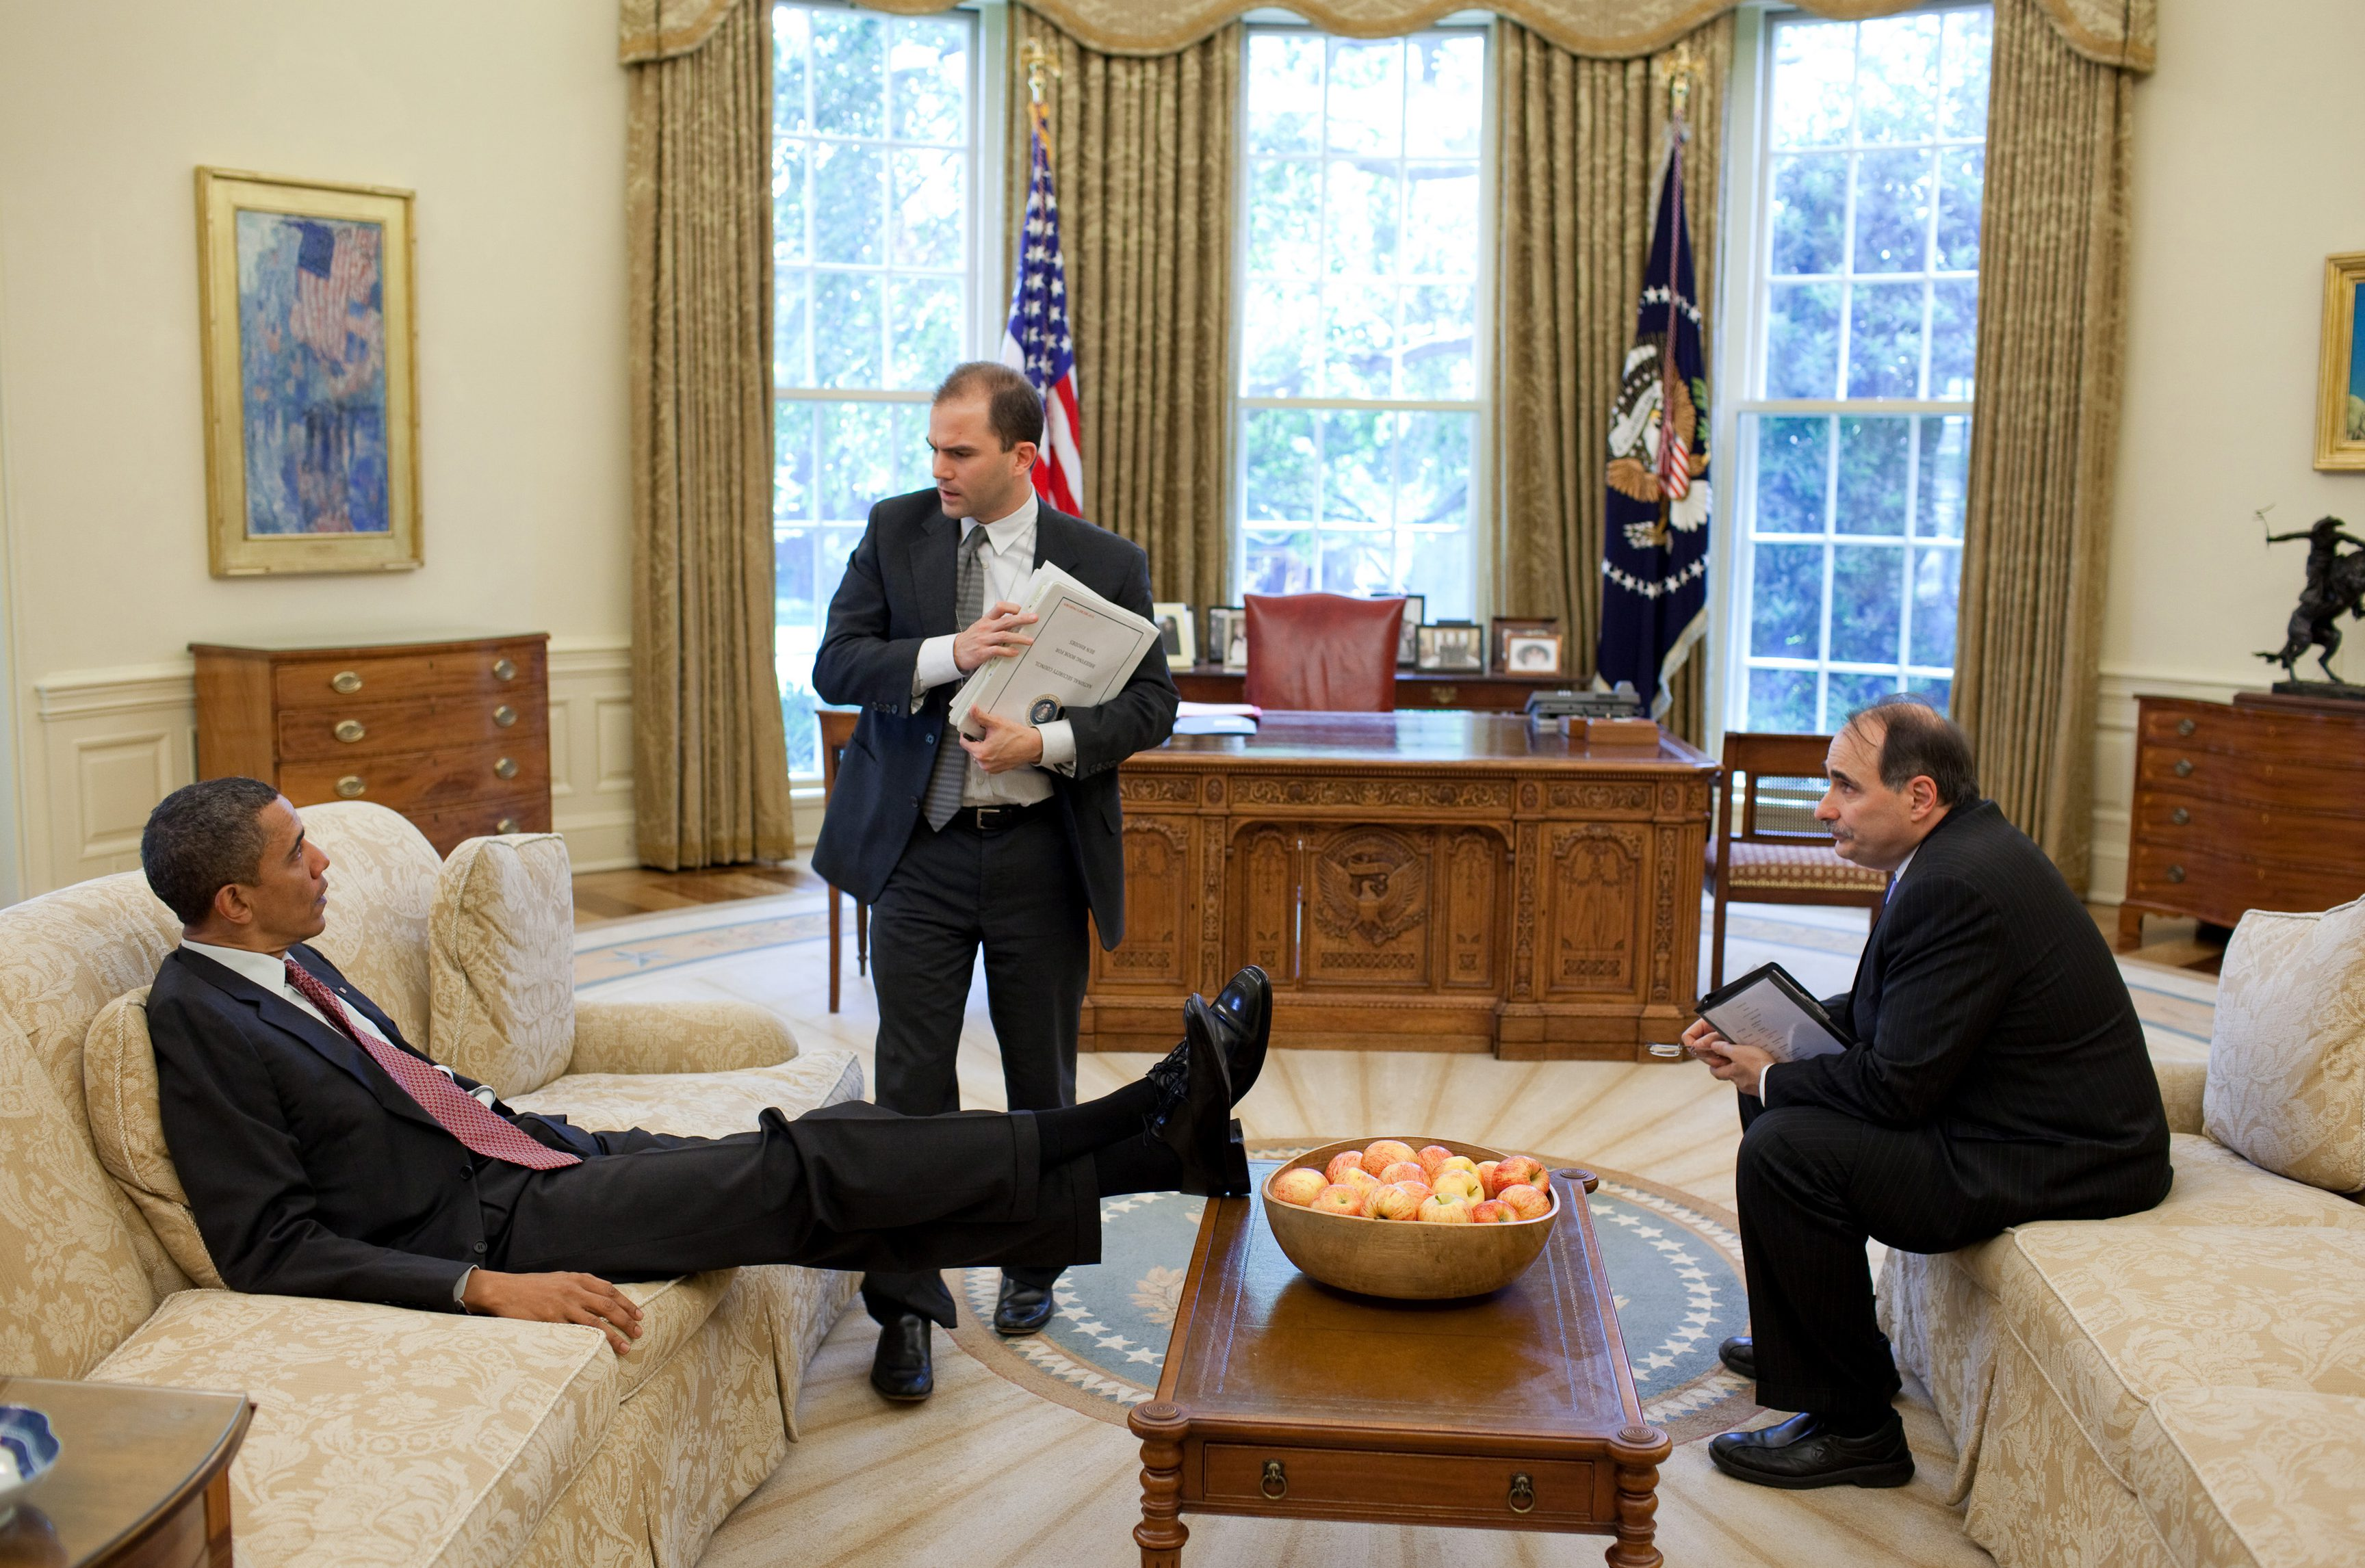 U.S. President Barack Barack Obama talks with Deputy National Security Advisor for Strategic Communication Ben Rhodes (C) and Senior Advisor David Axelrod (R) in the Oval Office, in this White House handout photograph taken on May 21, 2010 and released on June 7, 2010.